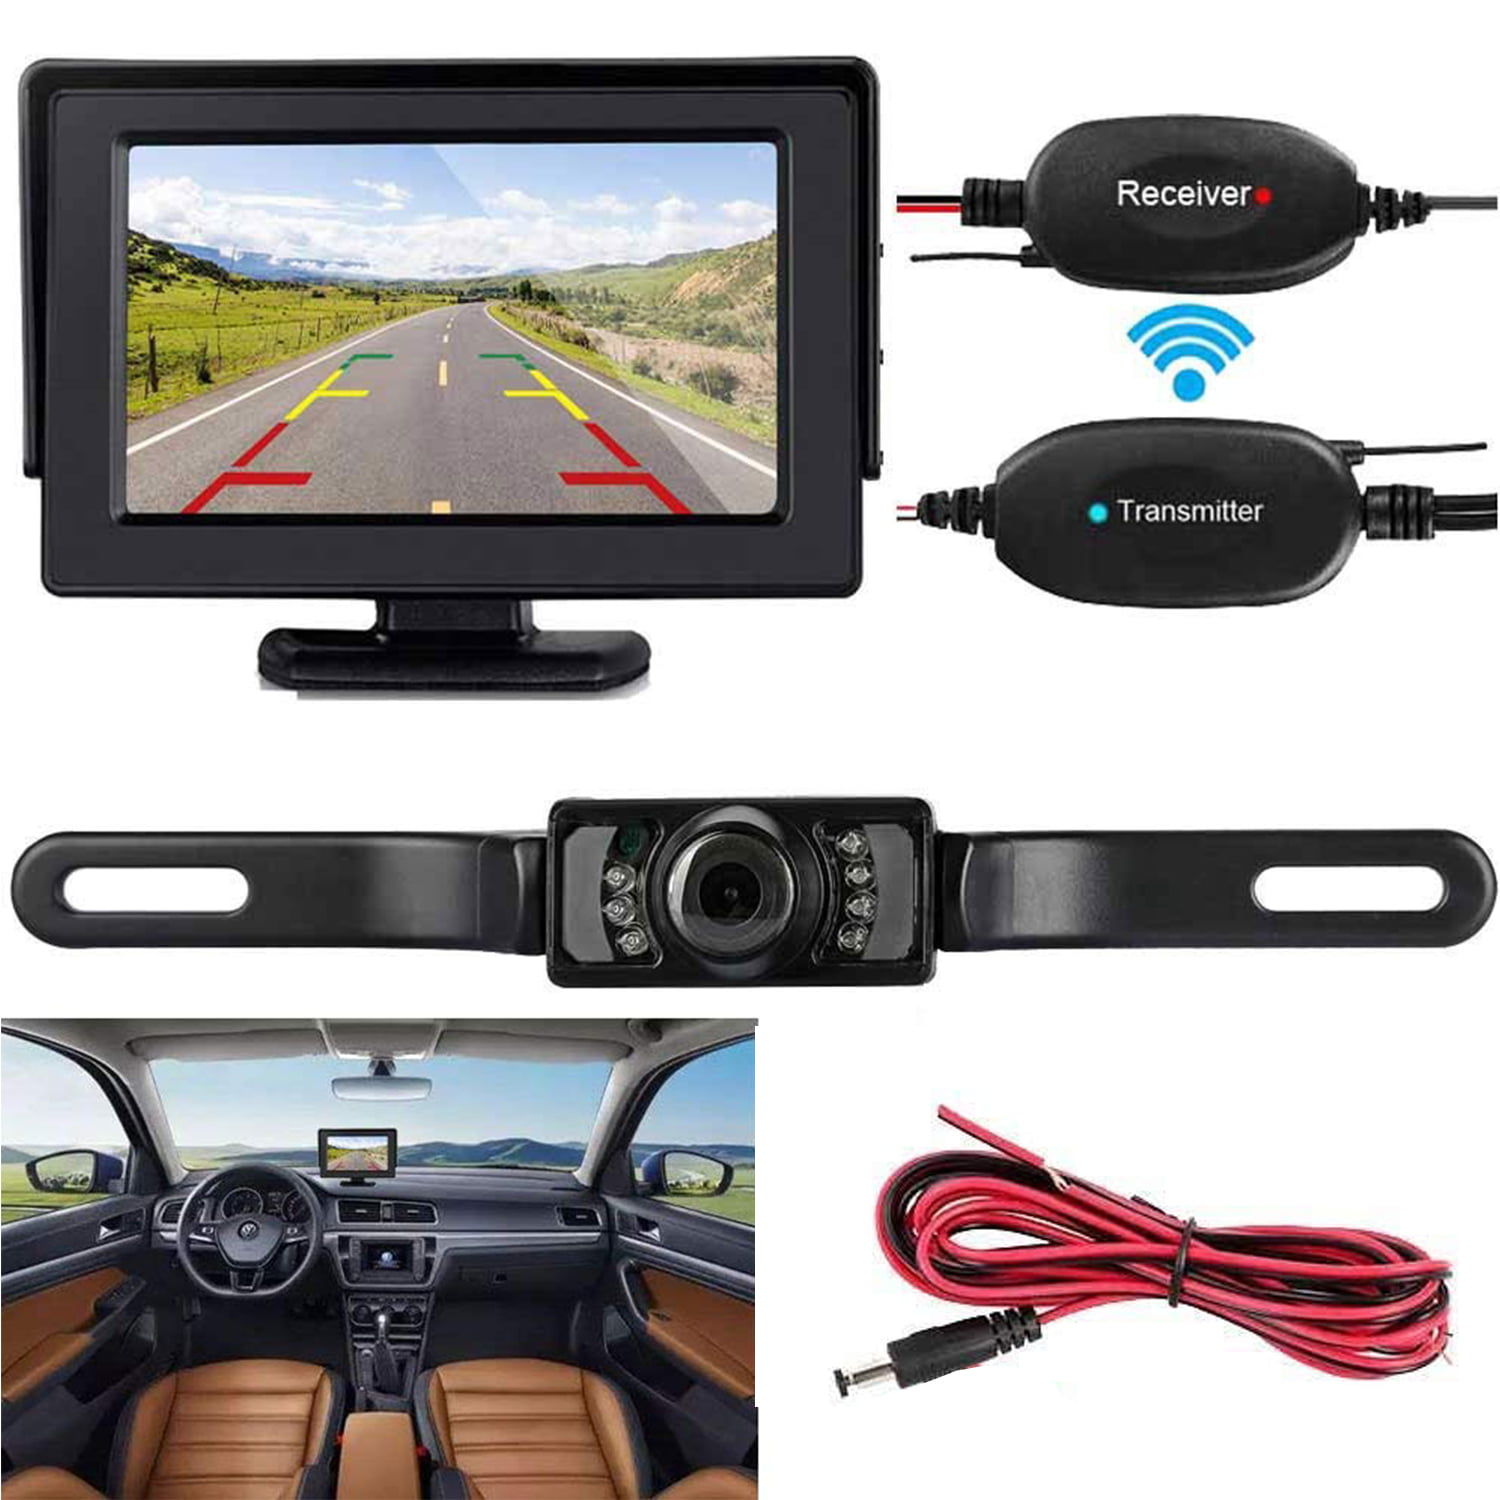 Style 2 7 LCD TFT Autos Truck Reversing Rear View Backup Digital Monitor Display Car Rear View Kit Wireless 2.4GHz 420 TV Lines IR Color CMOS Car Rear View Camera